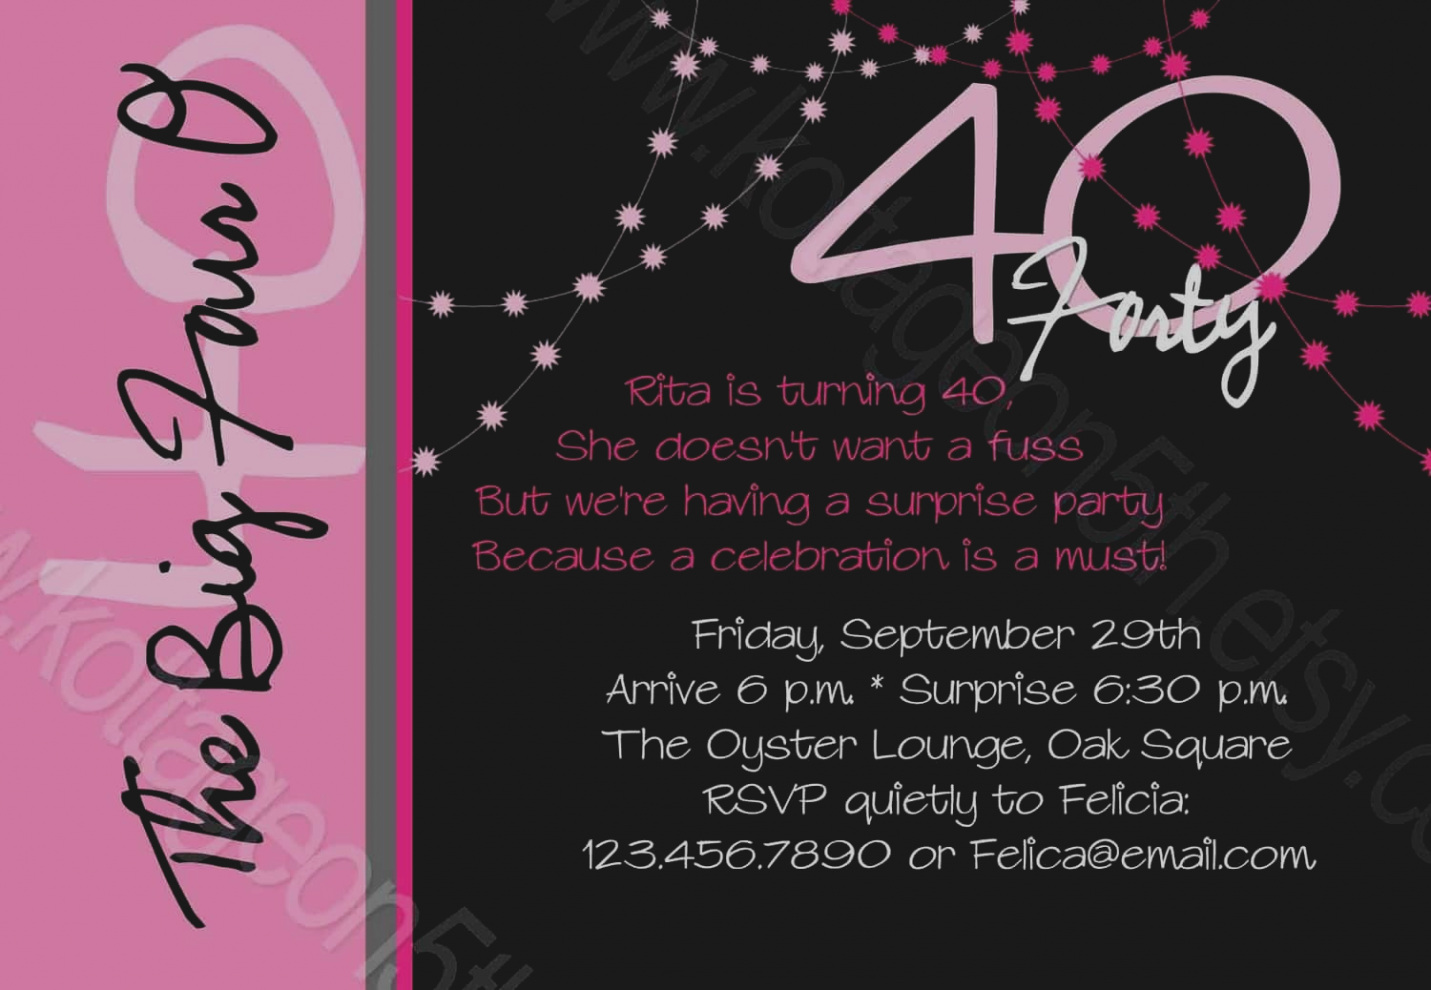 free 40th birthday invitation wording samples ; gallery-fortieth-birthday-invitation-wording-how-to-select-the-40th-free-ideas